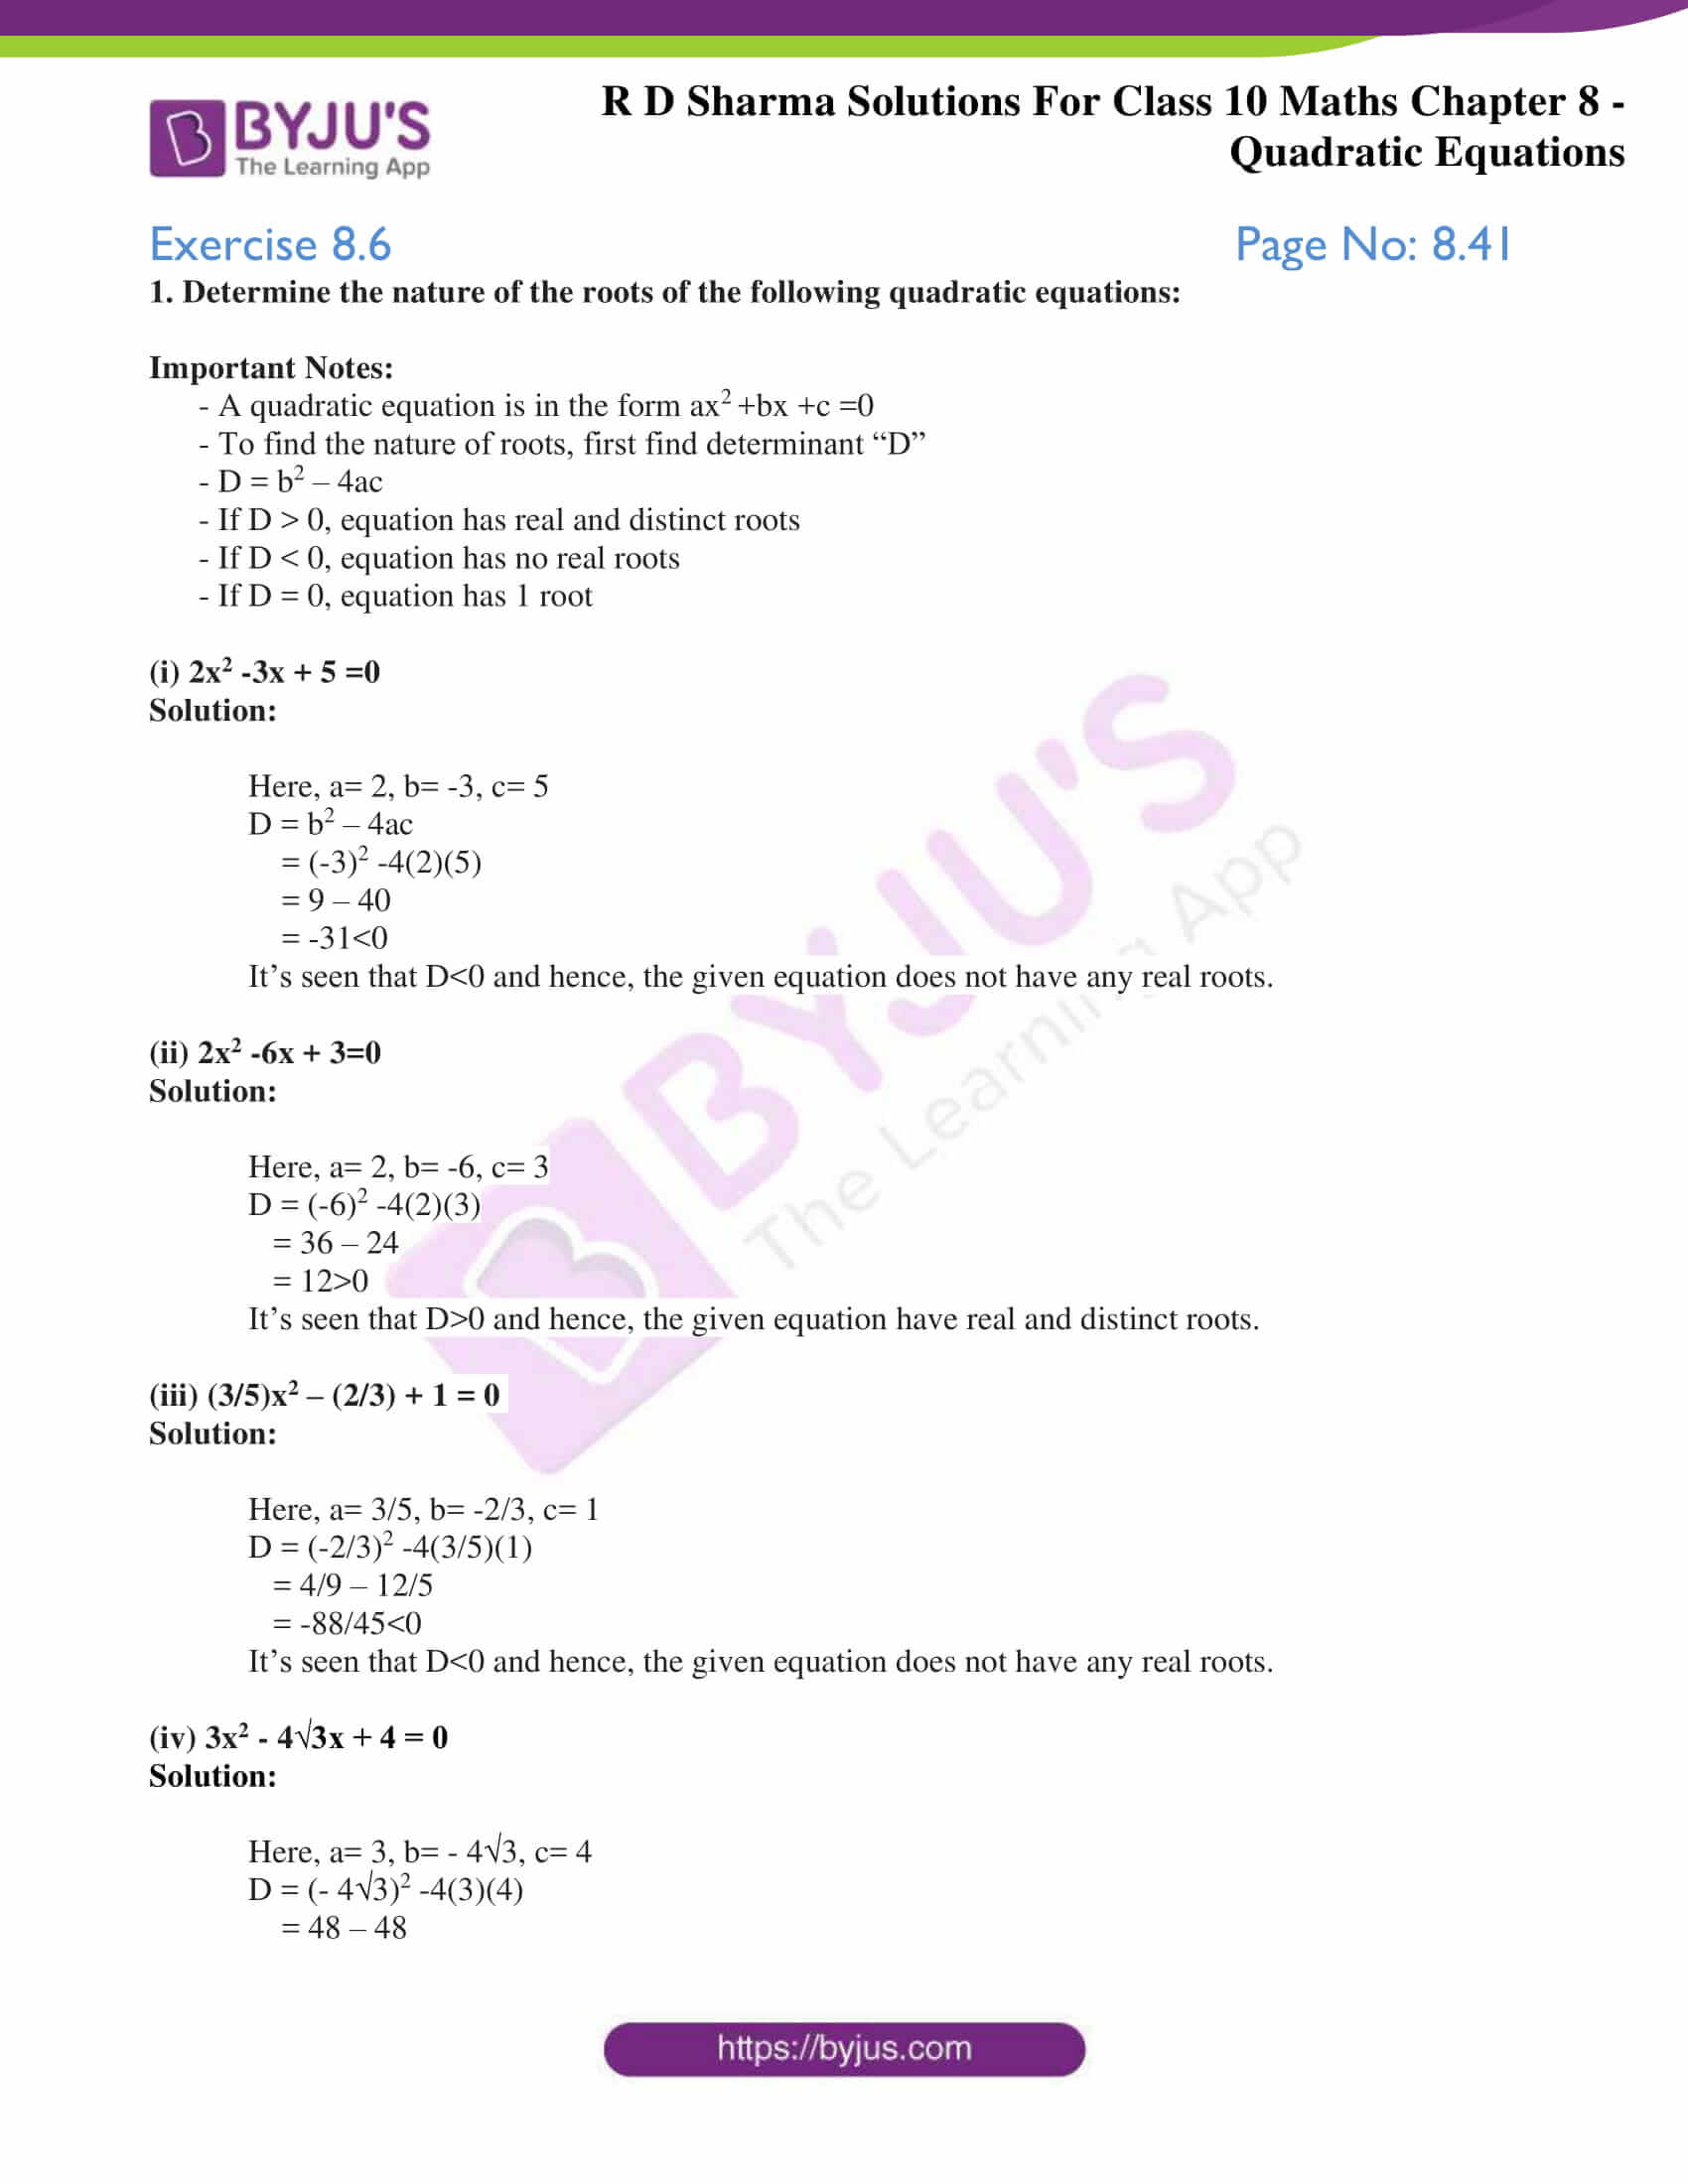 RD Sharma Solutions for Class 10 Chapter 8 Quadratic Equations 31